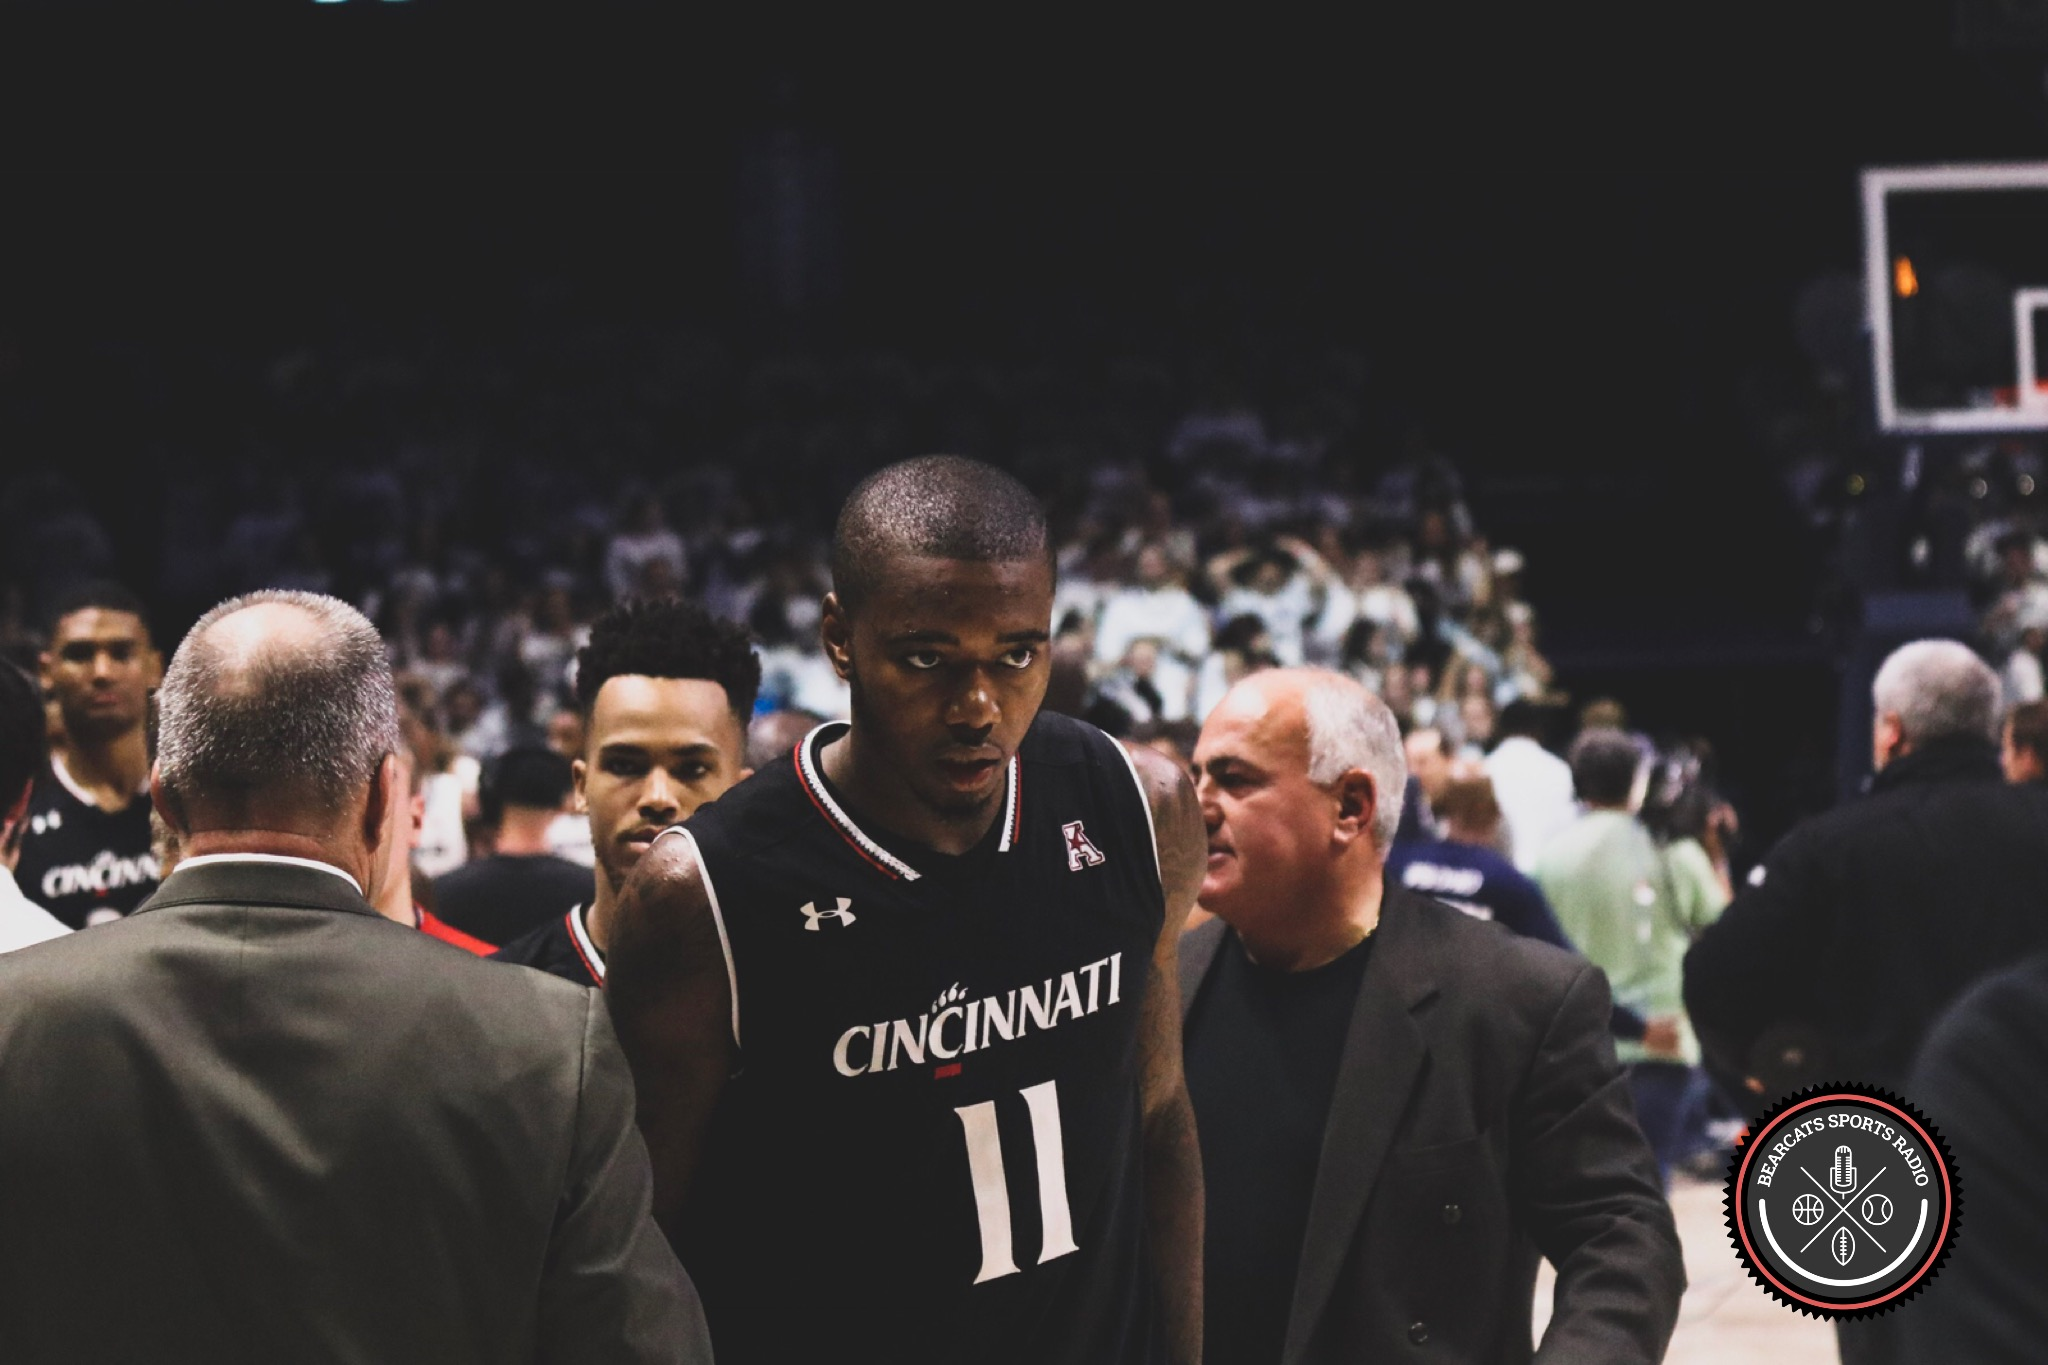 Bearcats Sports Radio